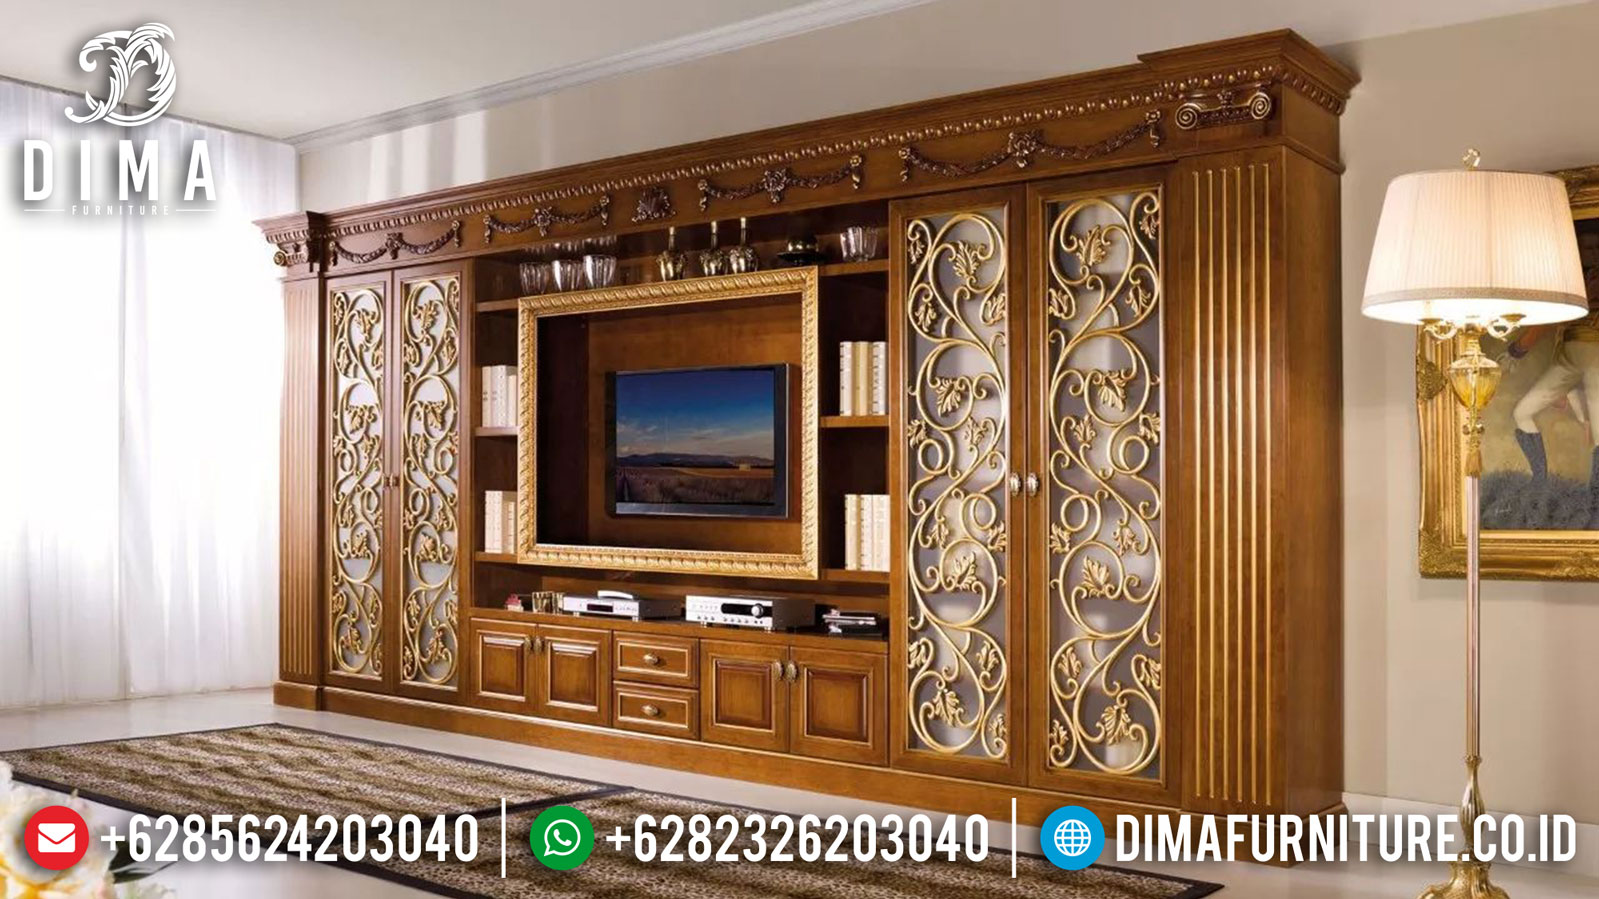 Harga Bufet TV Mewah Luxury Carving Greatest Product Furniture Jepara TTJ-1023